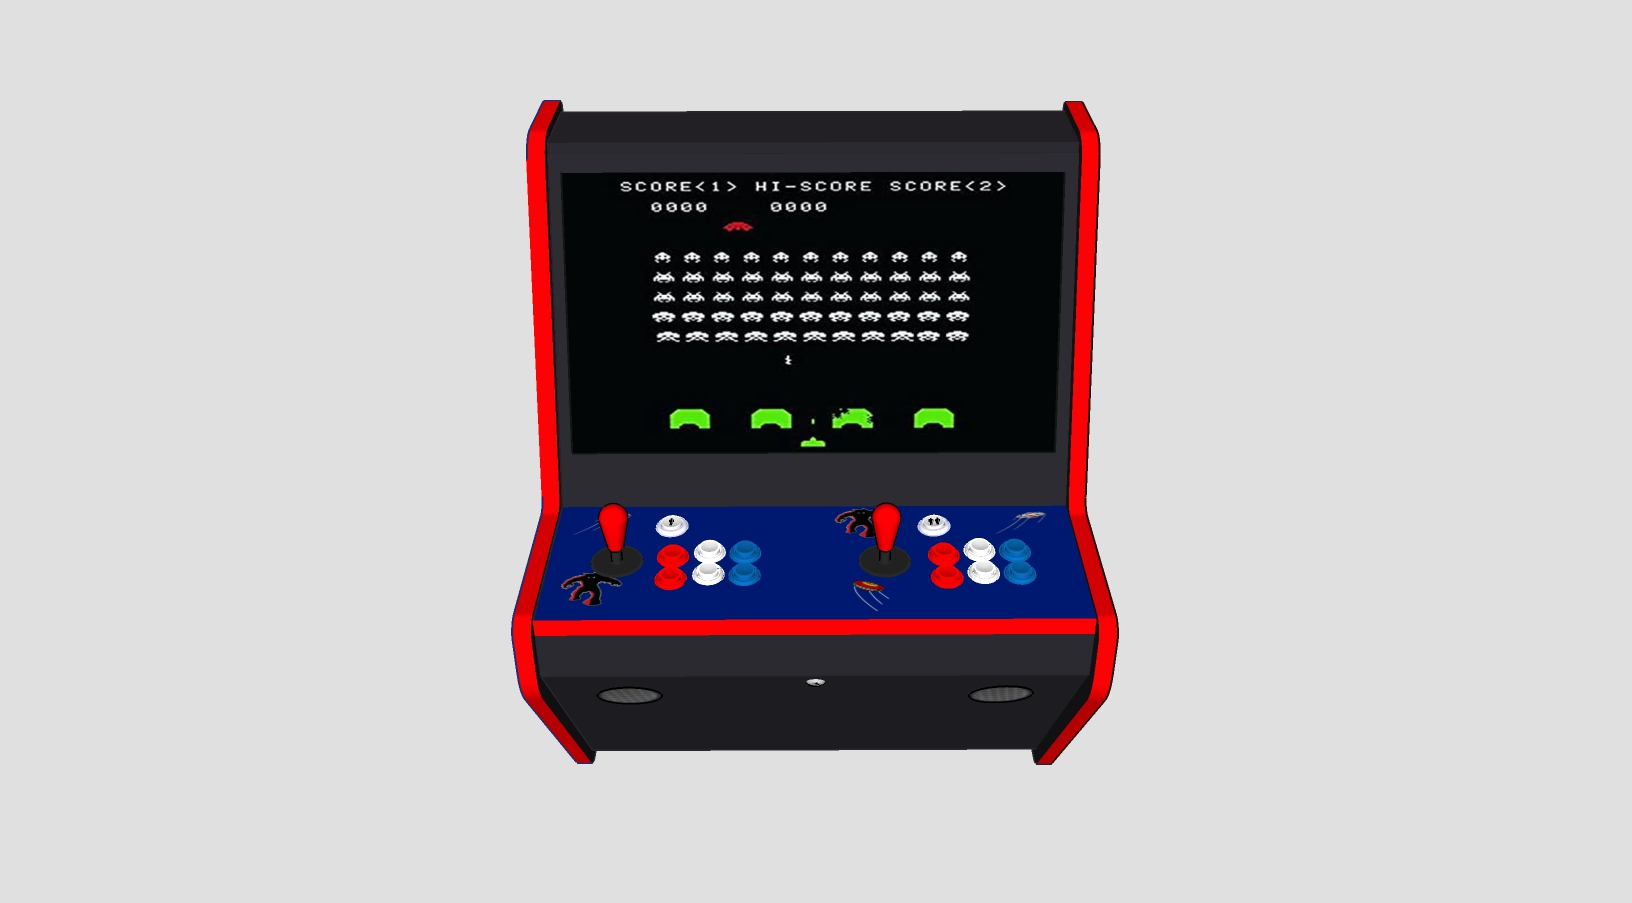 Wall Hung Arcade 3000 Games Space Invaders Theme - Middle